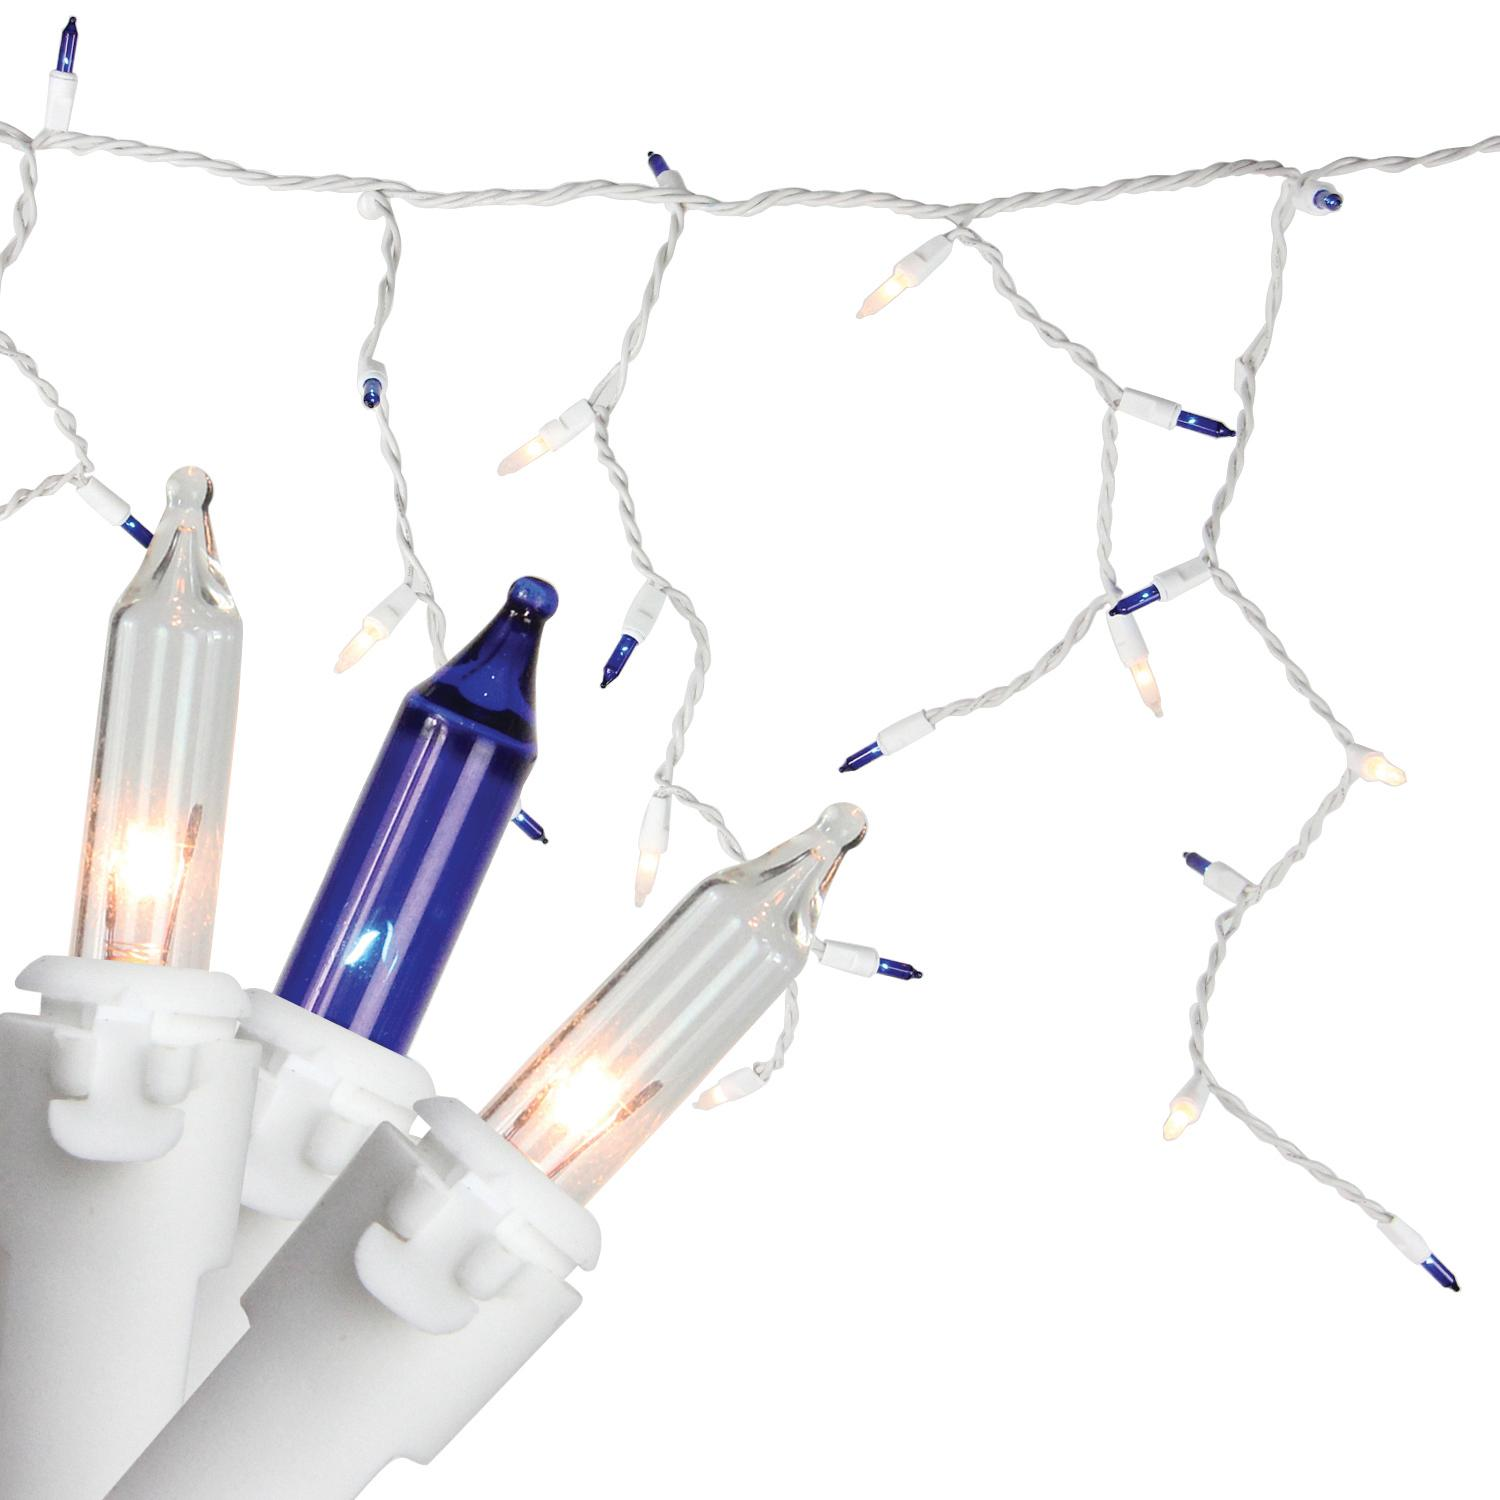 "Set of 100 Blue & Clear Mini Icicle Christmas Lights 3"" Spacing - White Wire"